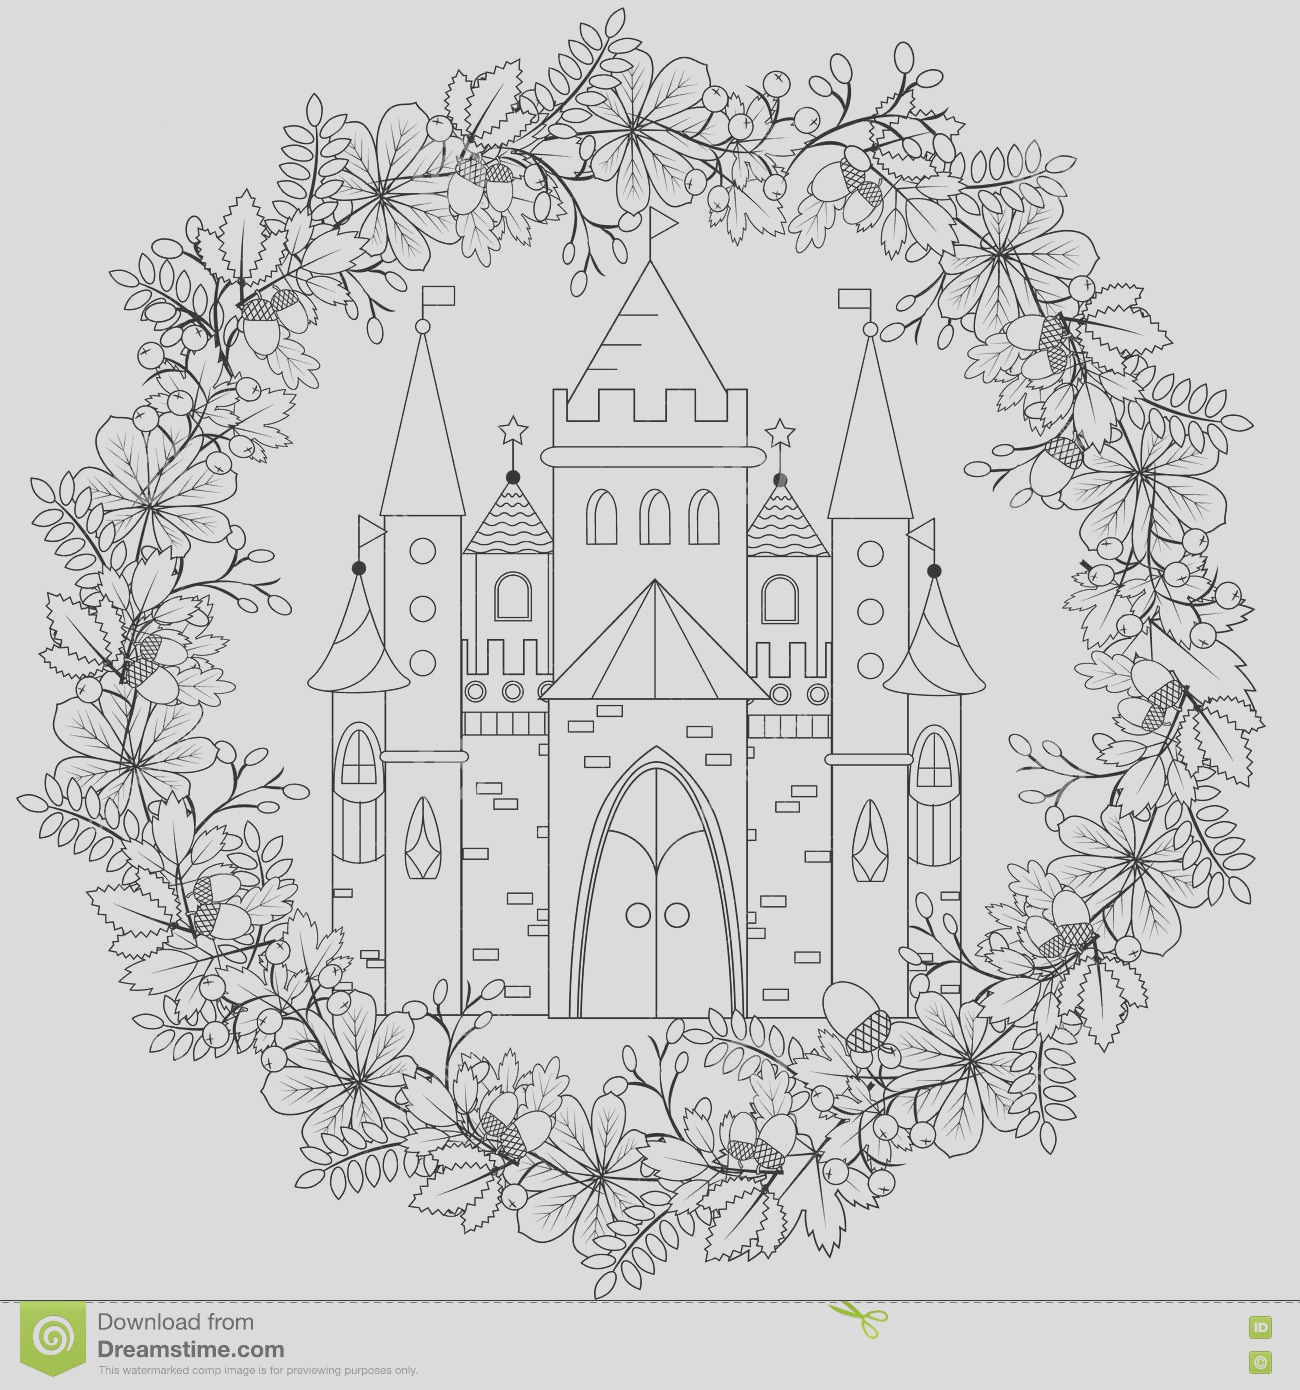 stock illustration relaxing coloring page fairy castle forest wreath kids adults art therapy meditation coloring book adult vector image